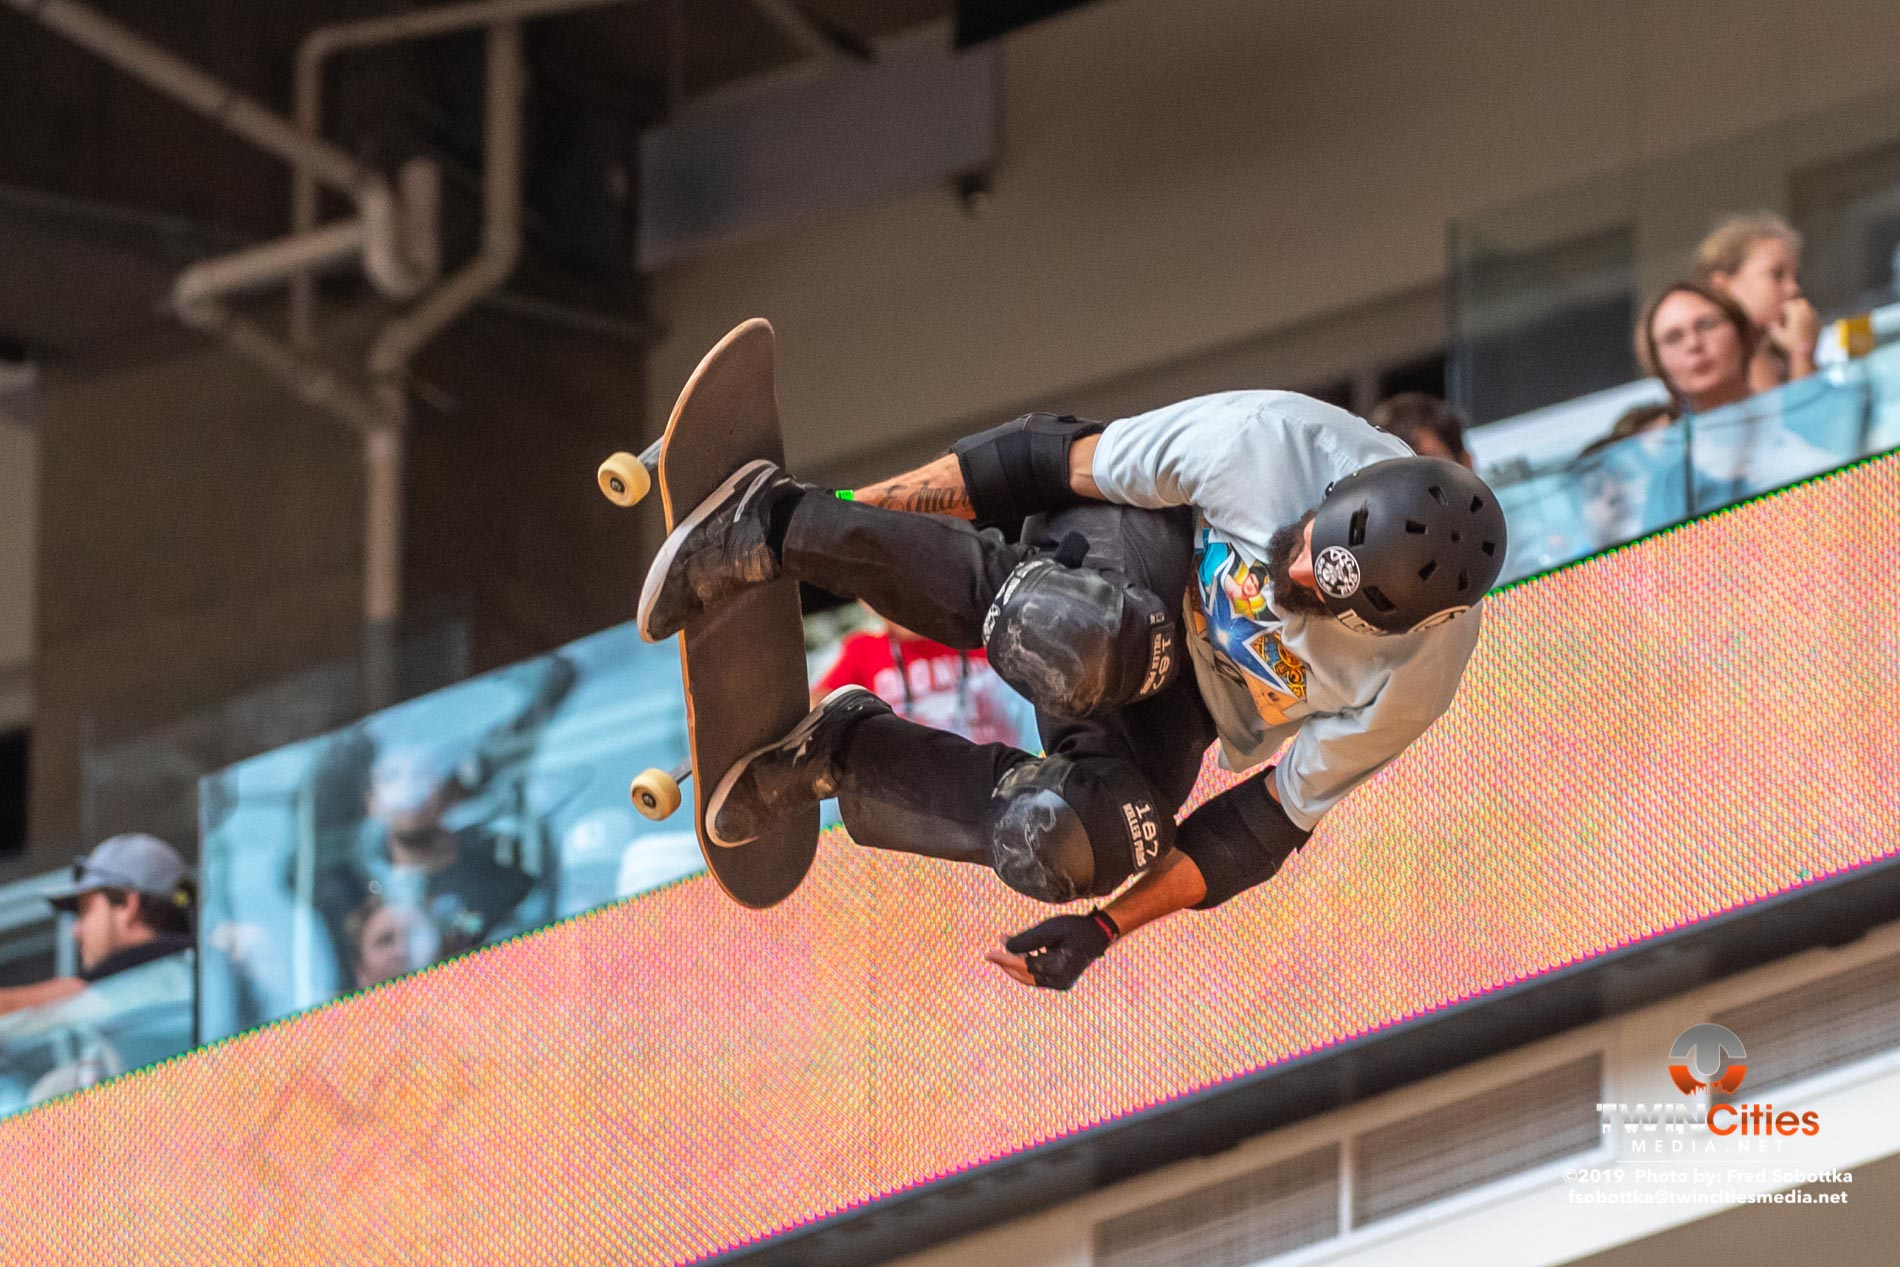 The-Real-Cost-Skateboard-Big-Air-10